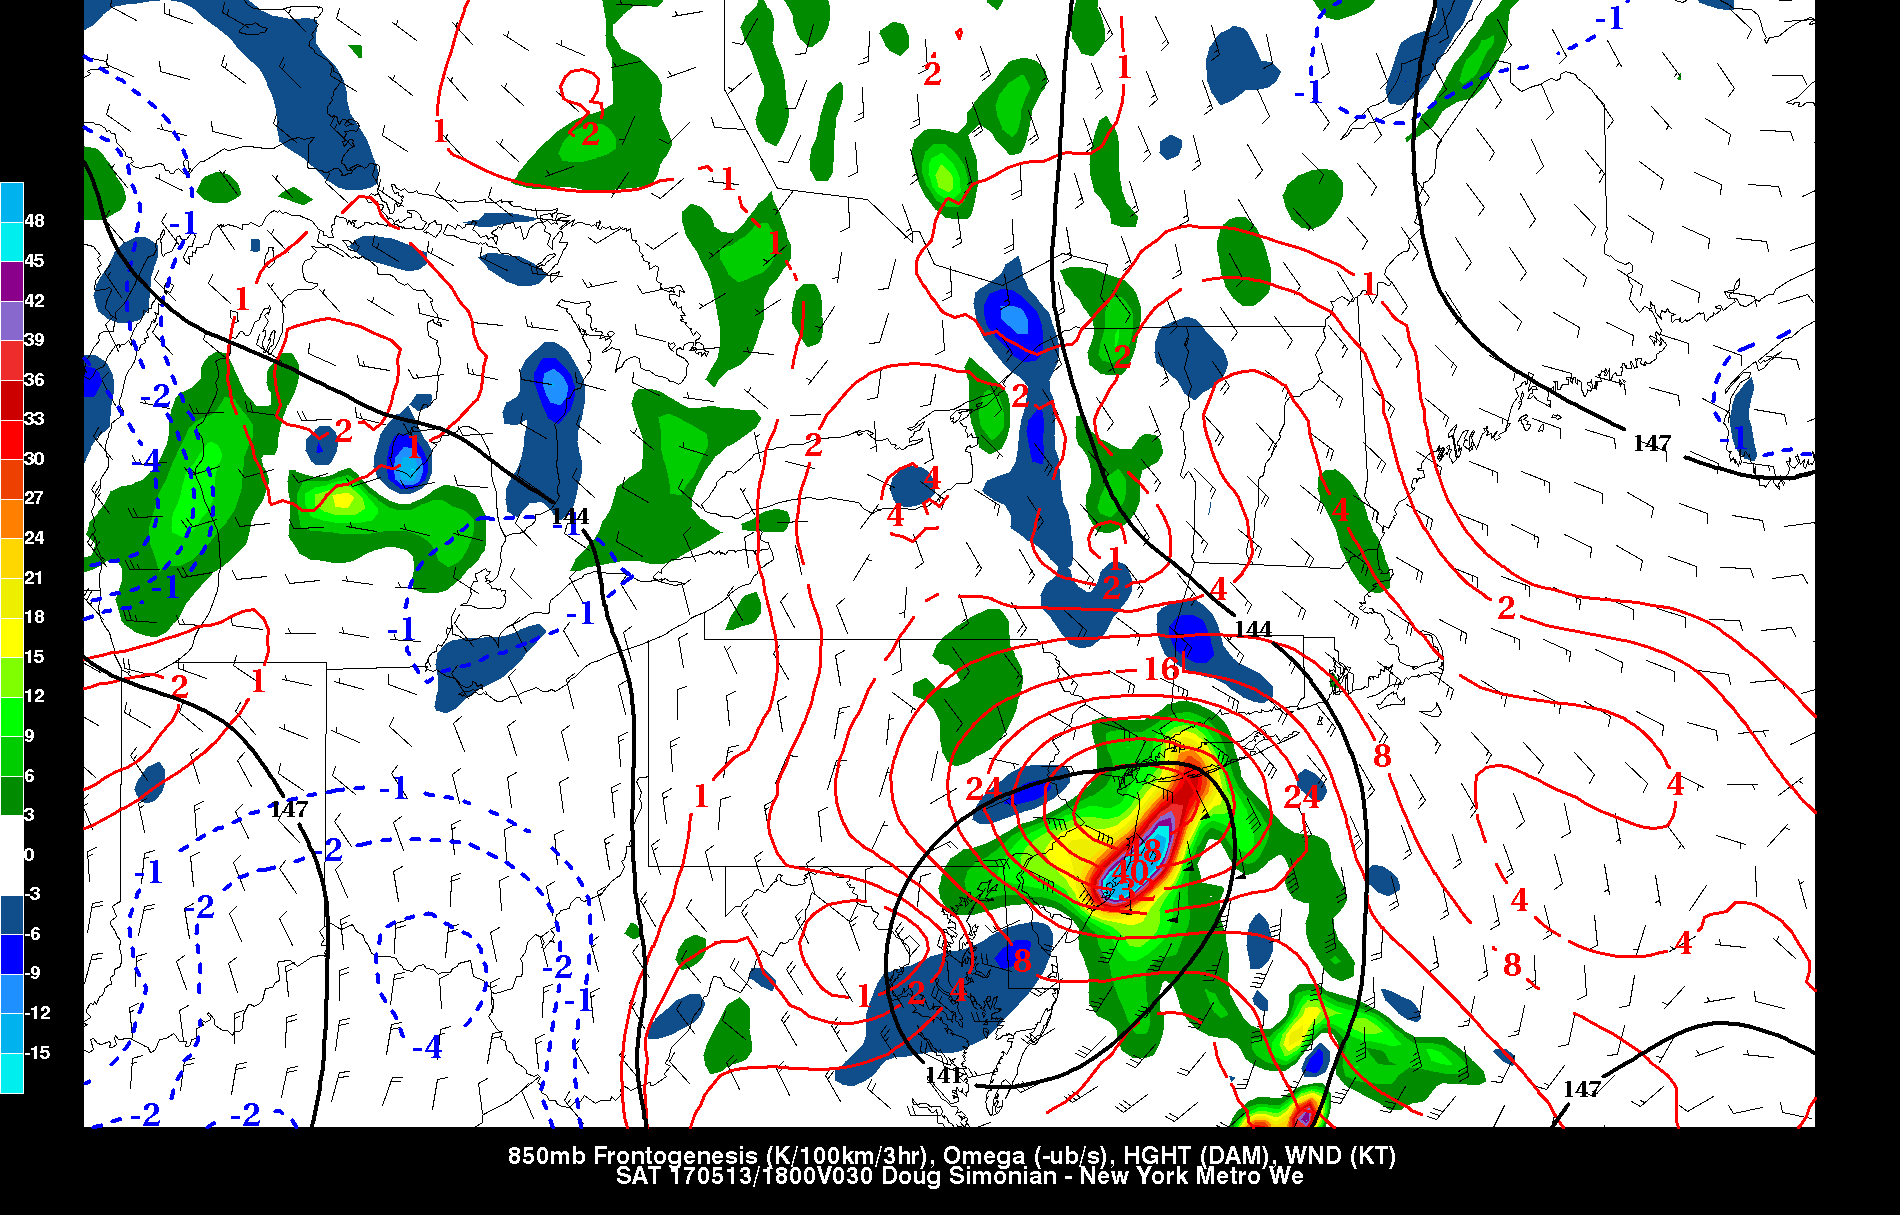 NAM showing storng mid-level frontogenesis over the region tomorrow afternoon